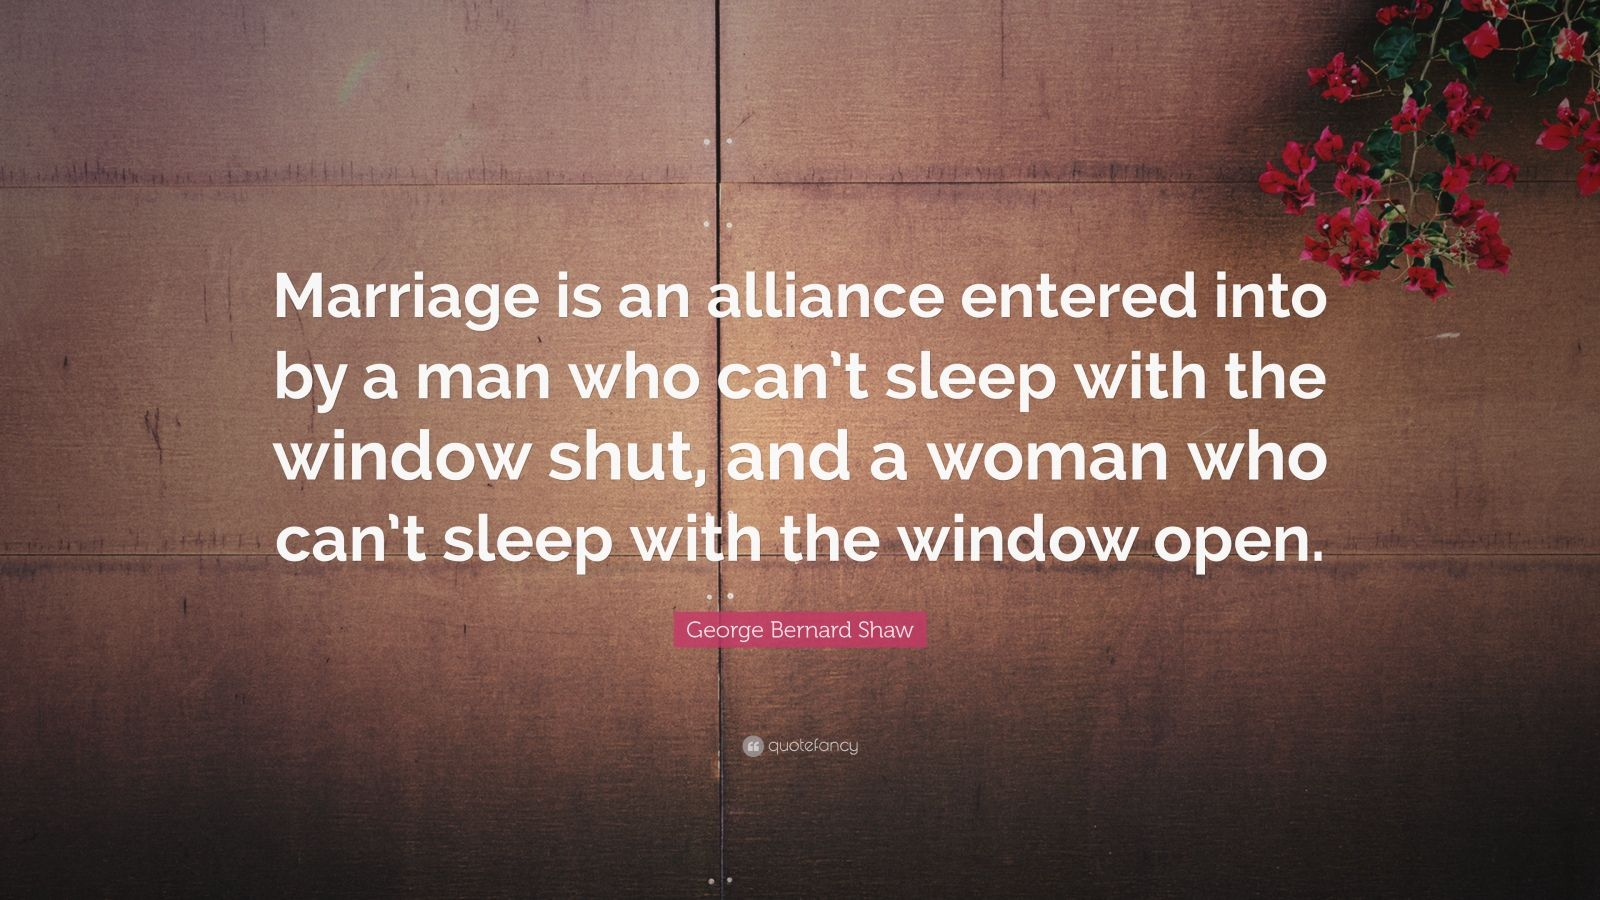 """George Bernard Shaw Quote: """"Marriage is an alliance entered into by a man who can't sleep with the window shut, and a woman who can't sleep with the window open."""""""